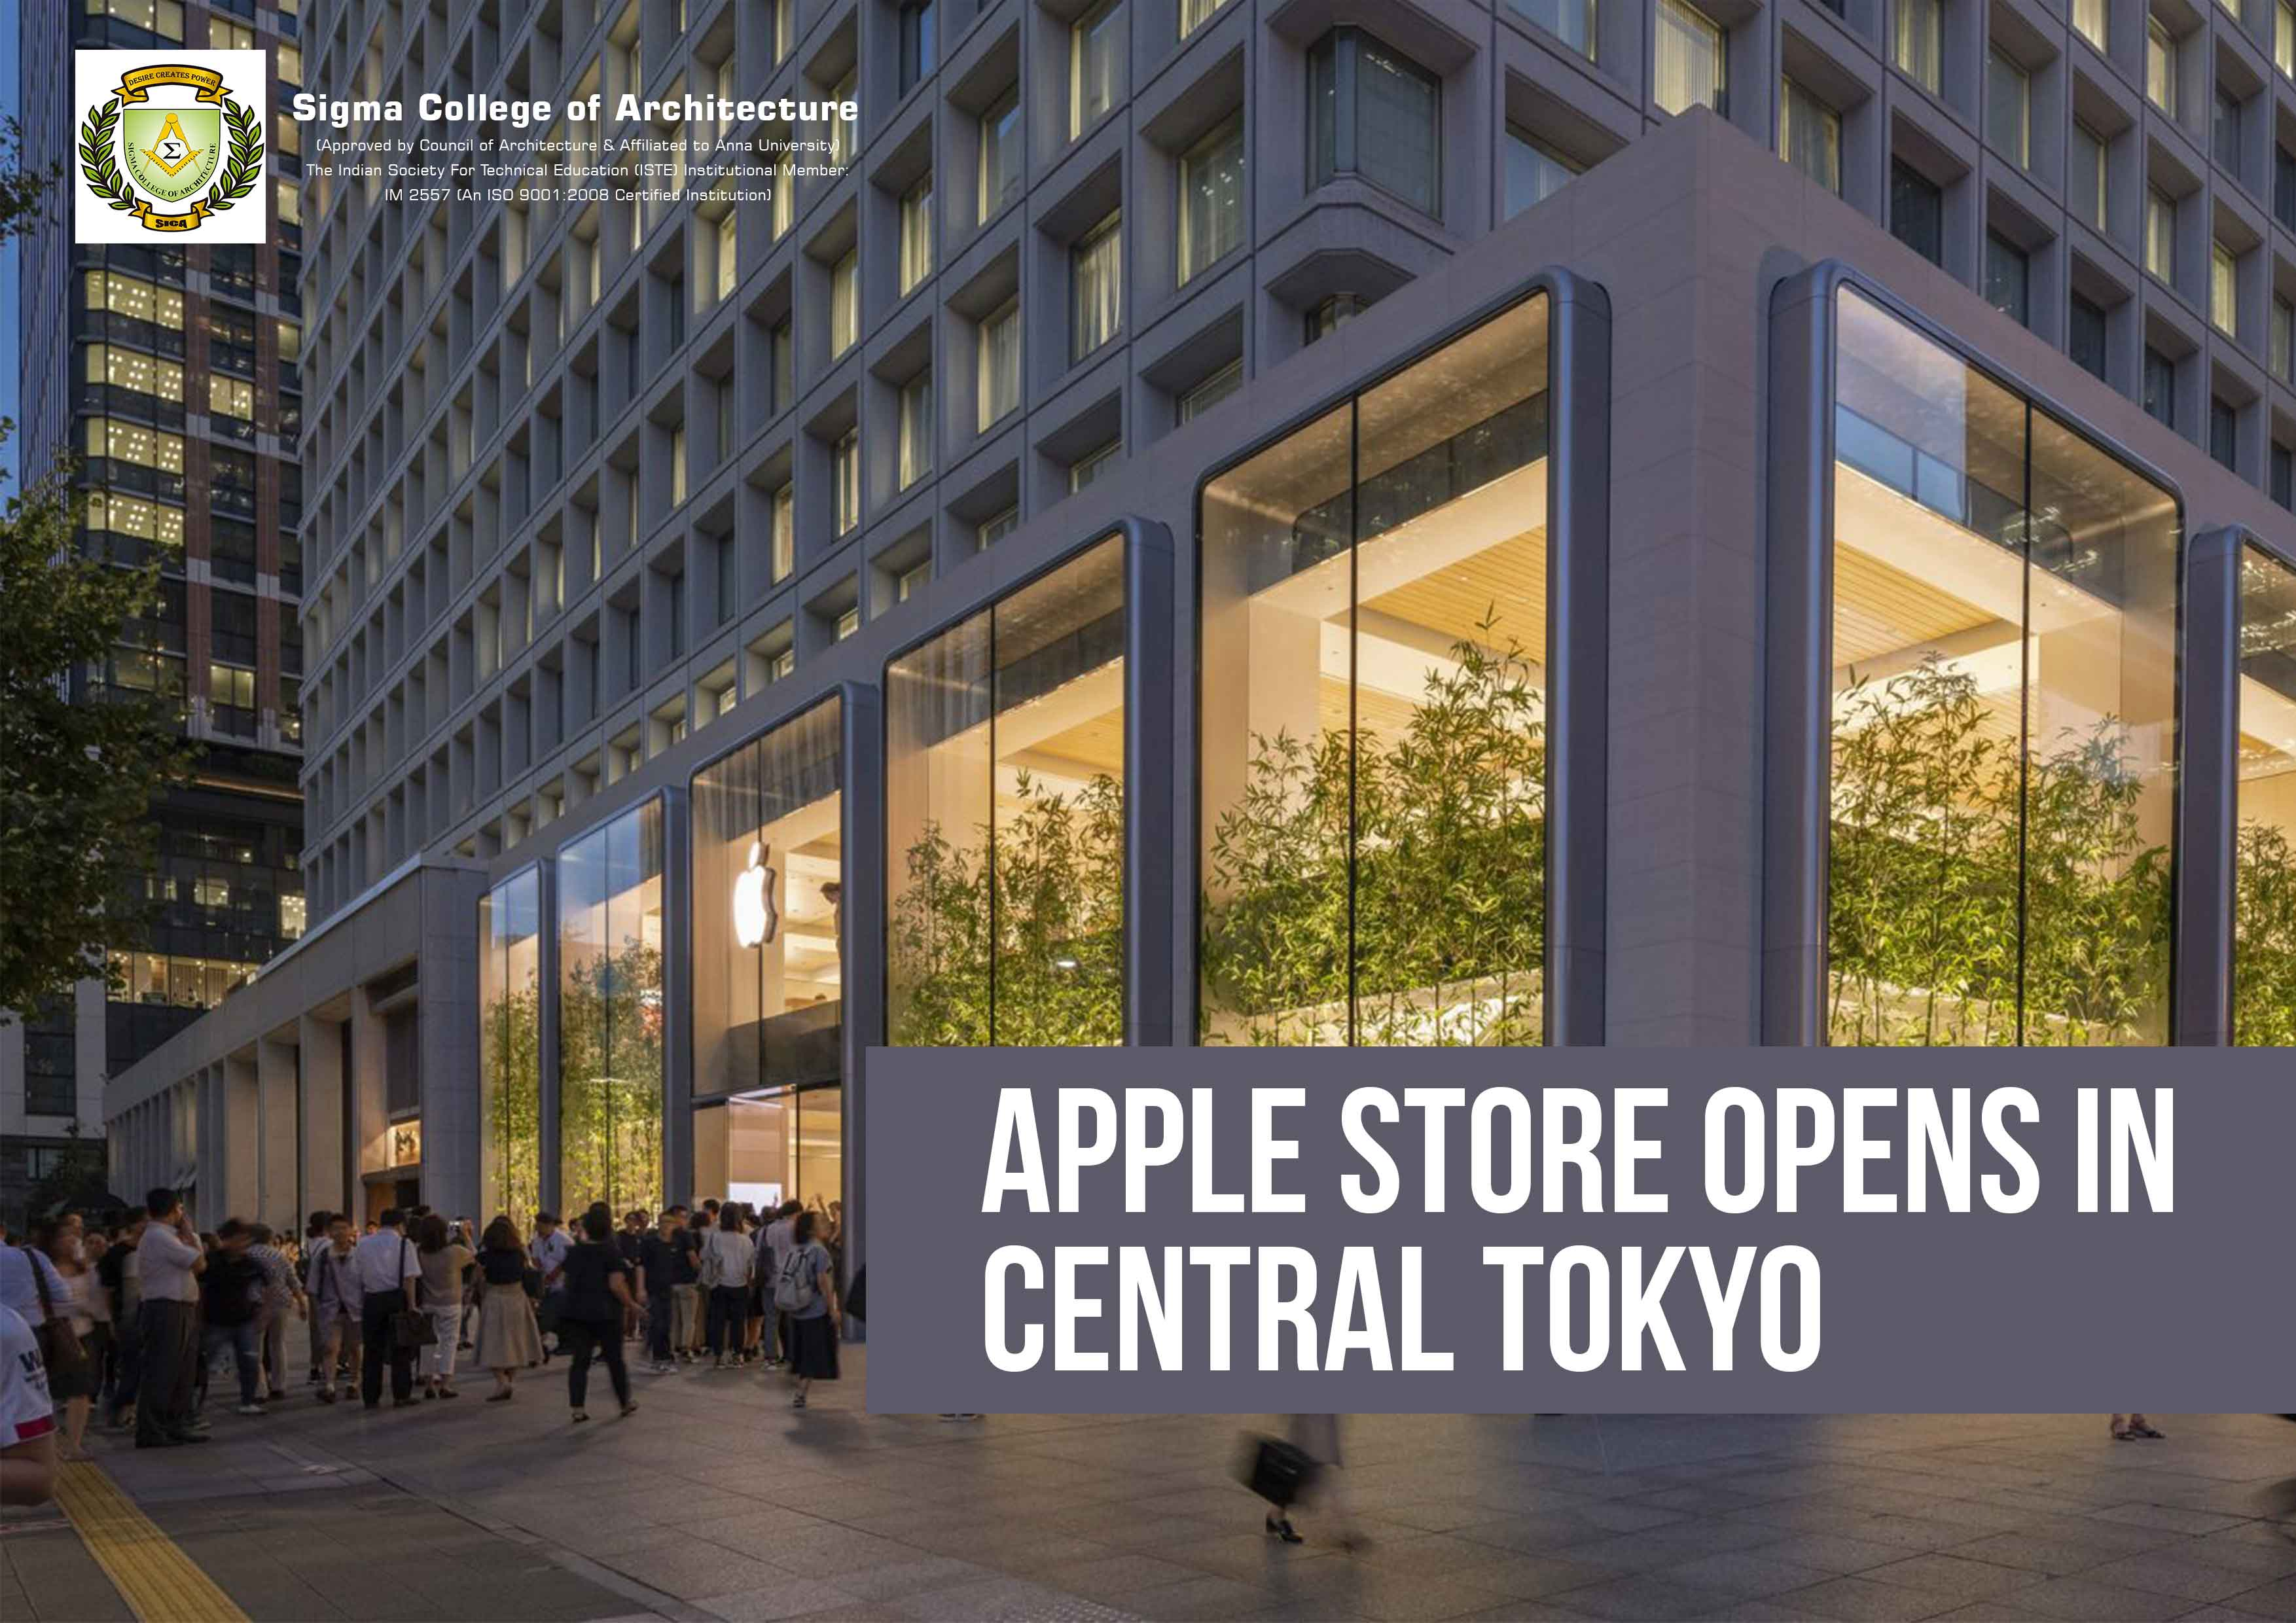 Apple Store Opens in Central Tokyo